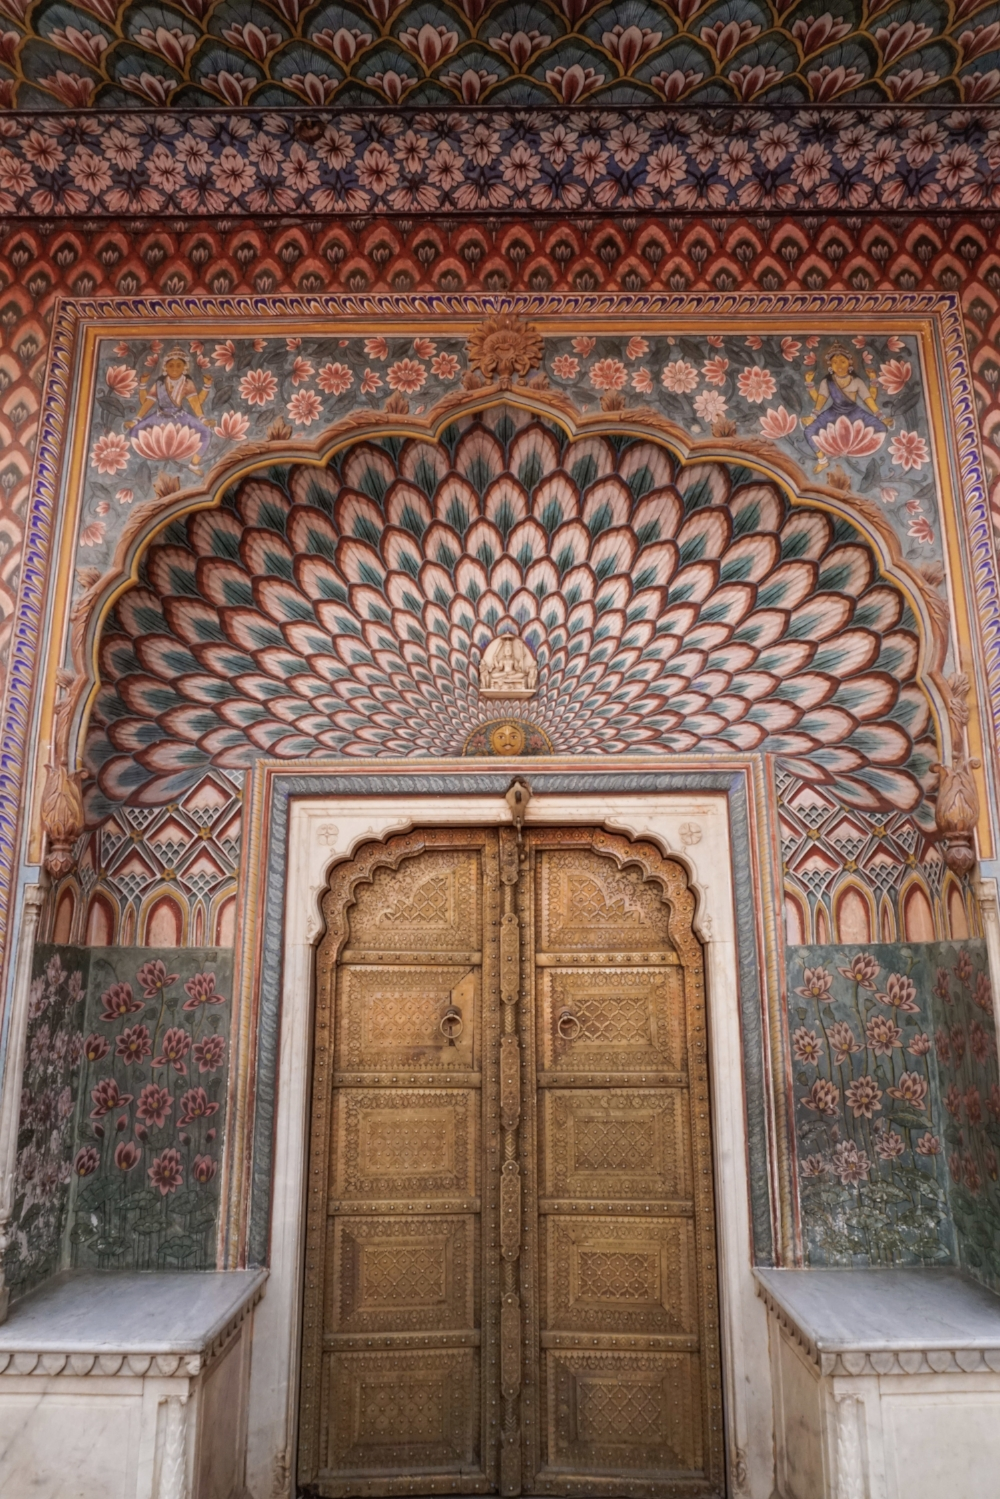 curio.trips.india.jodhpur.peacock.door.jpg